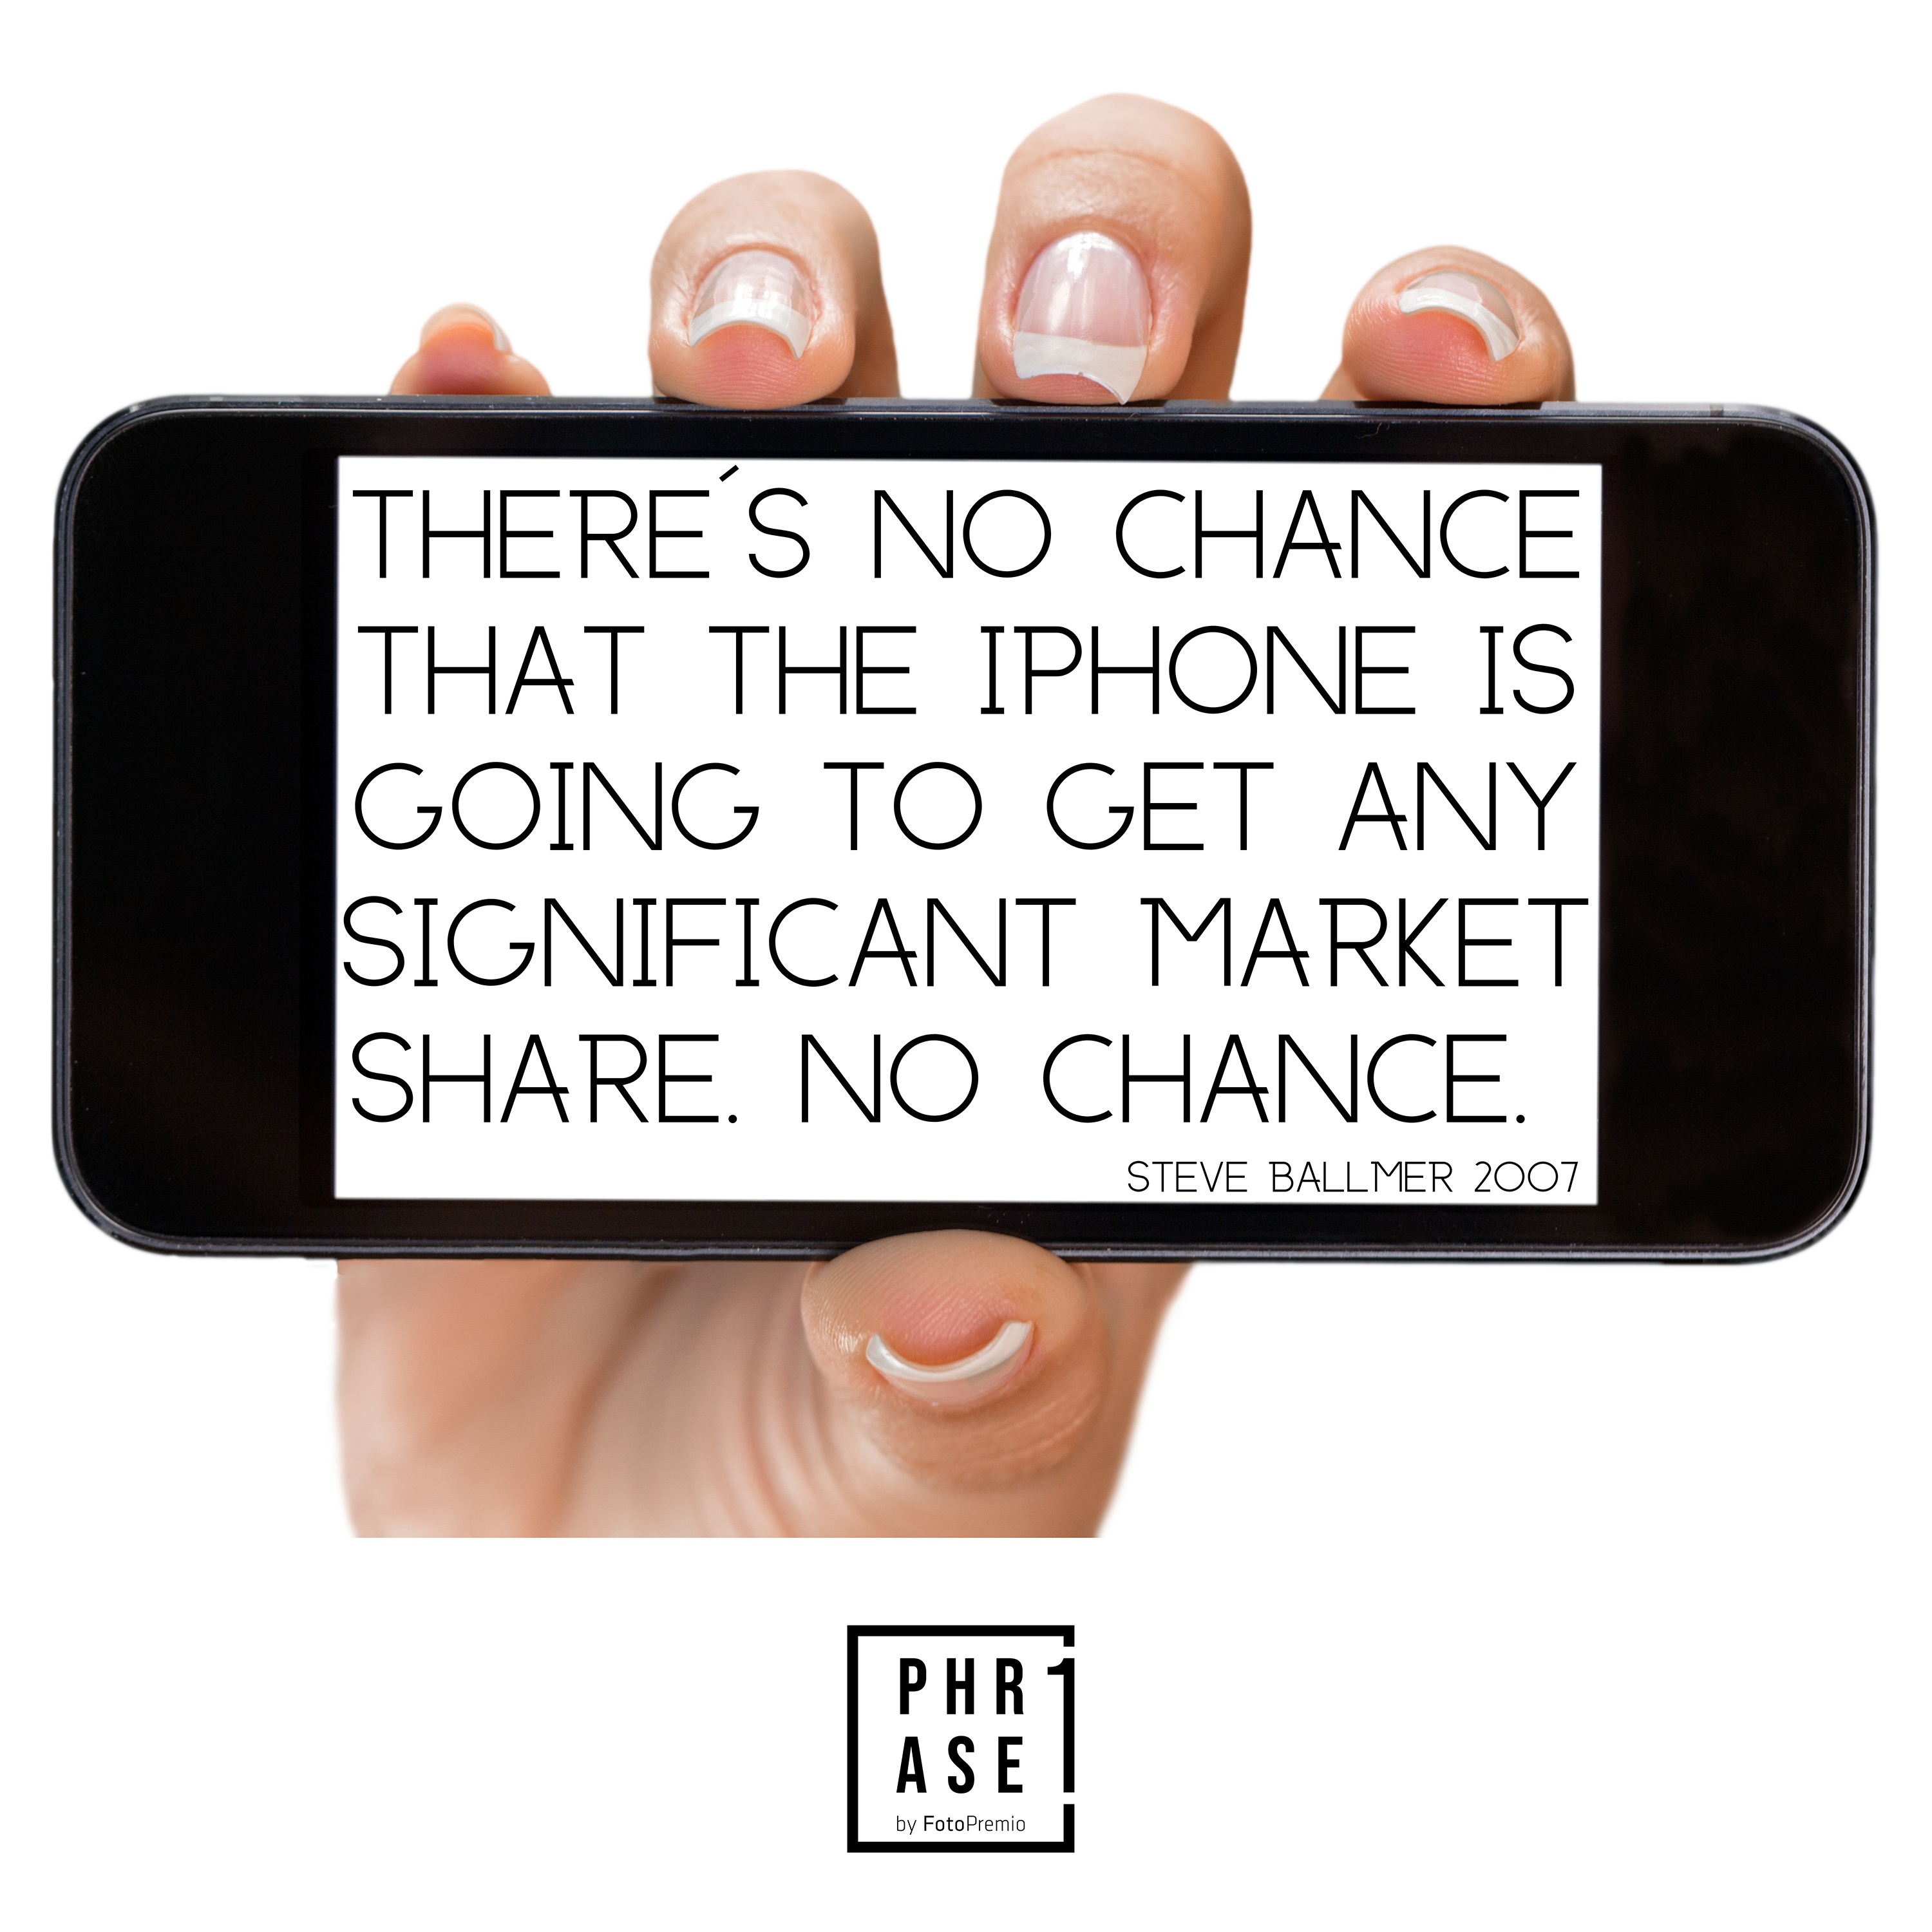 There´s no chance that the iPhone is going to get any significant market share. No chance. - Steve Ballmer 2007